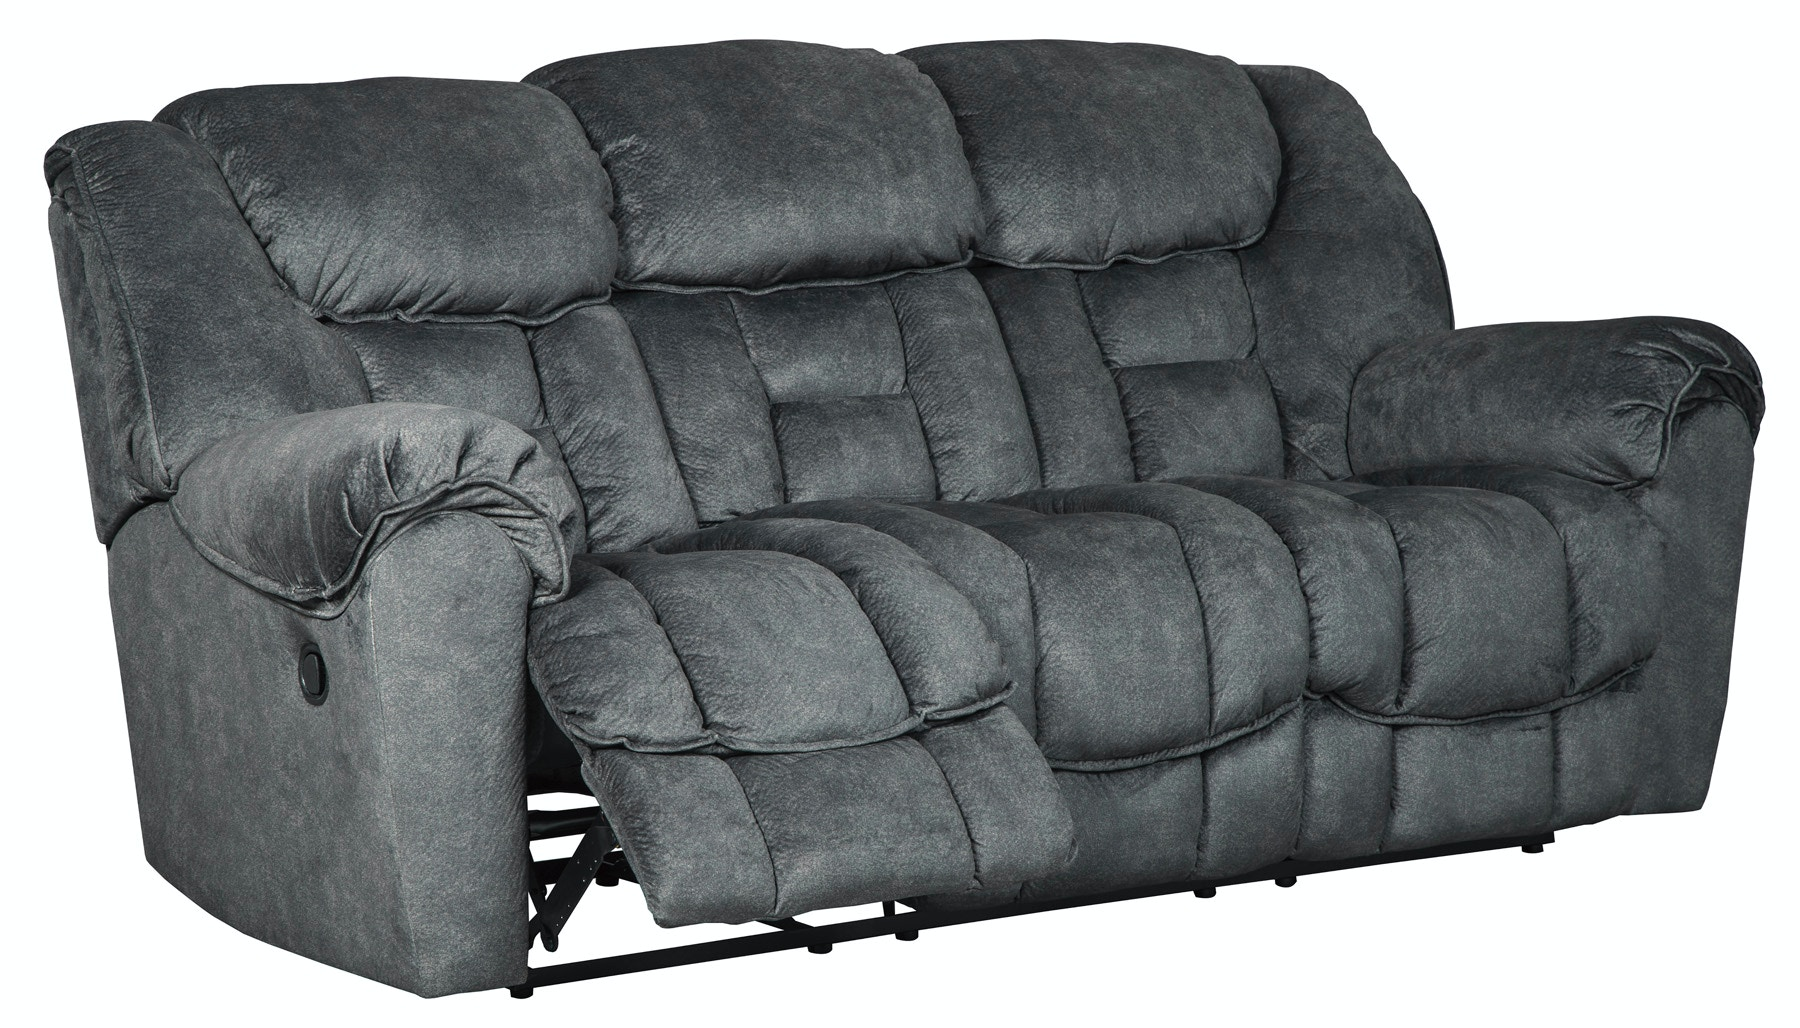 Signature Design By Ashley Capehorn Reclining Sofa 057038